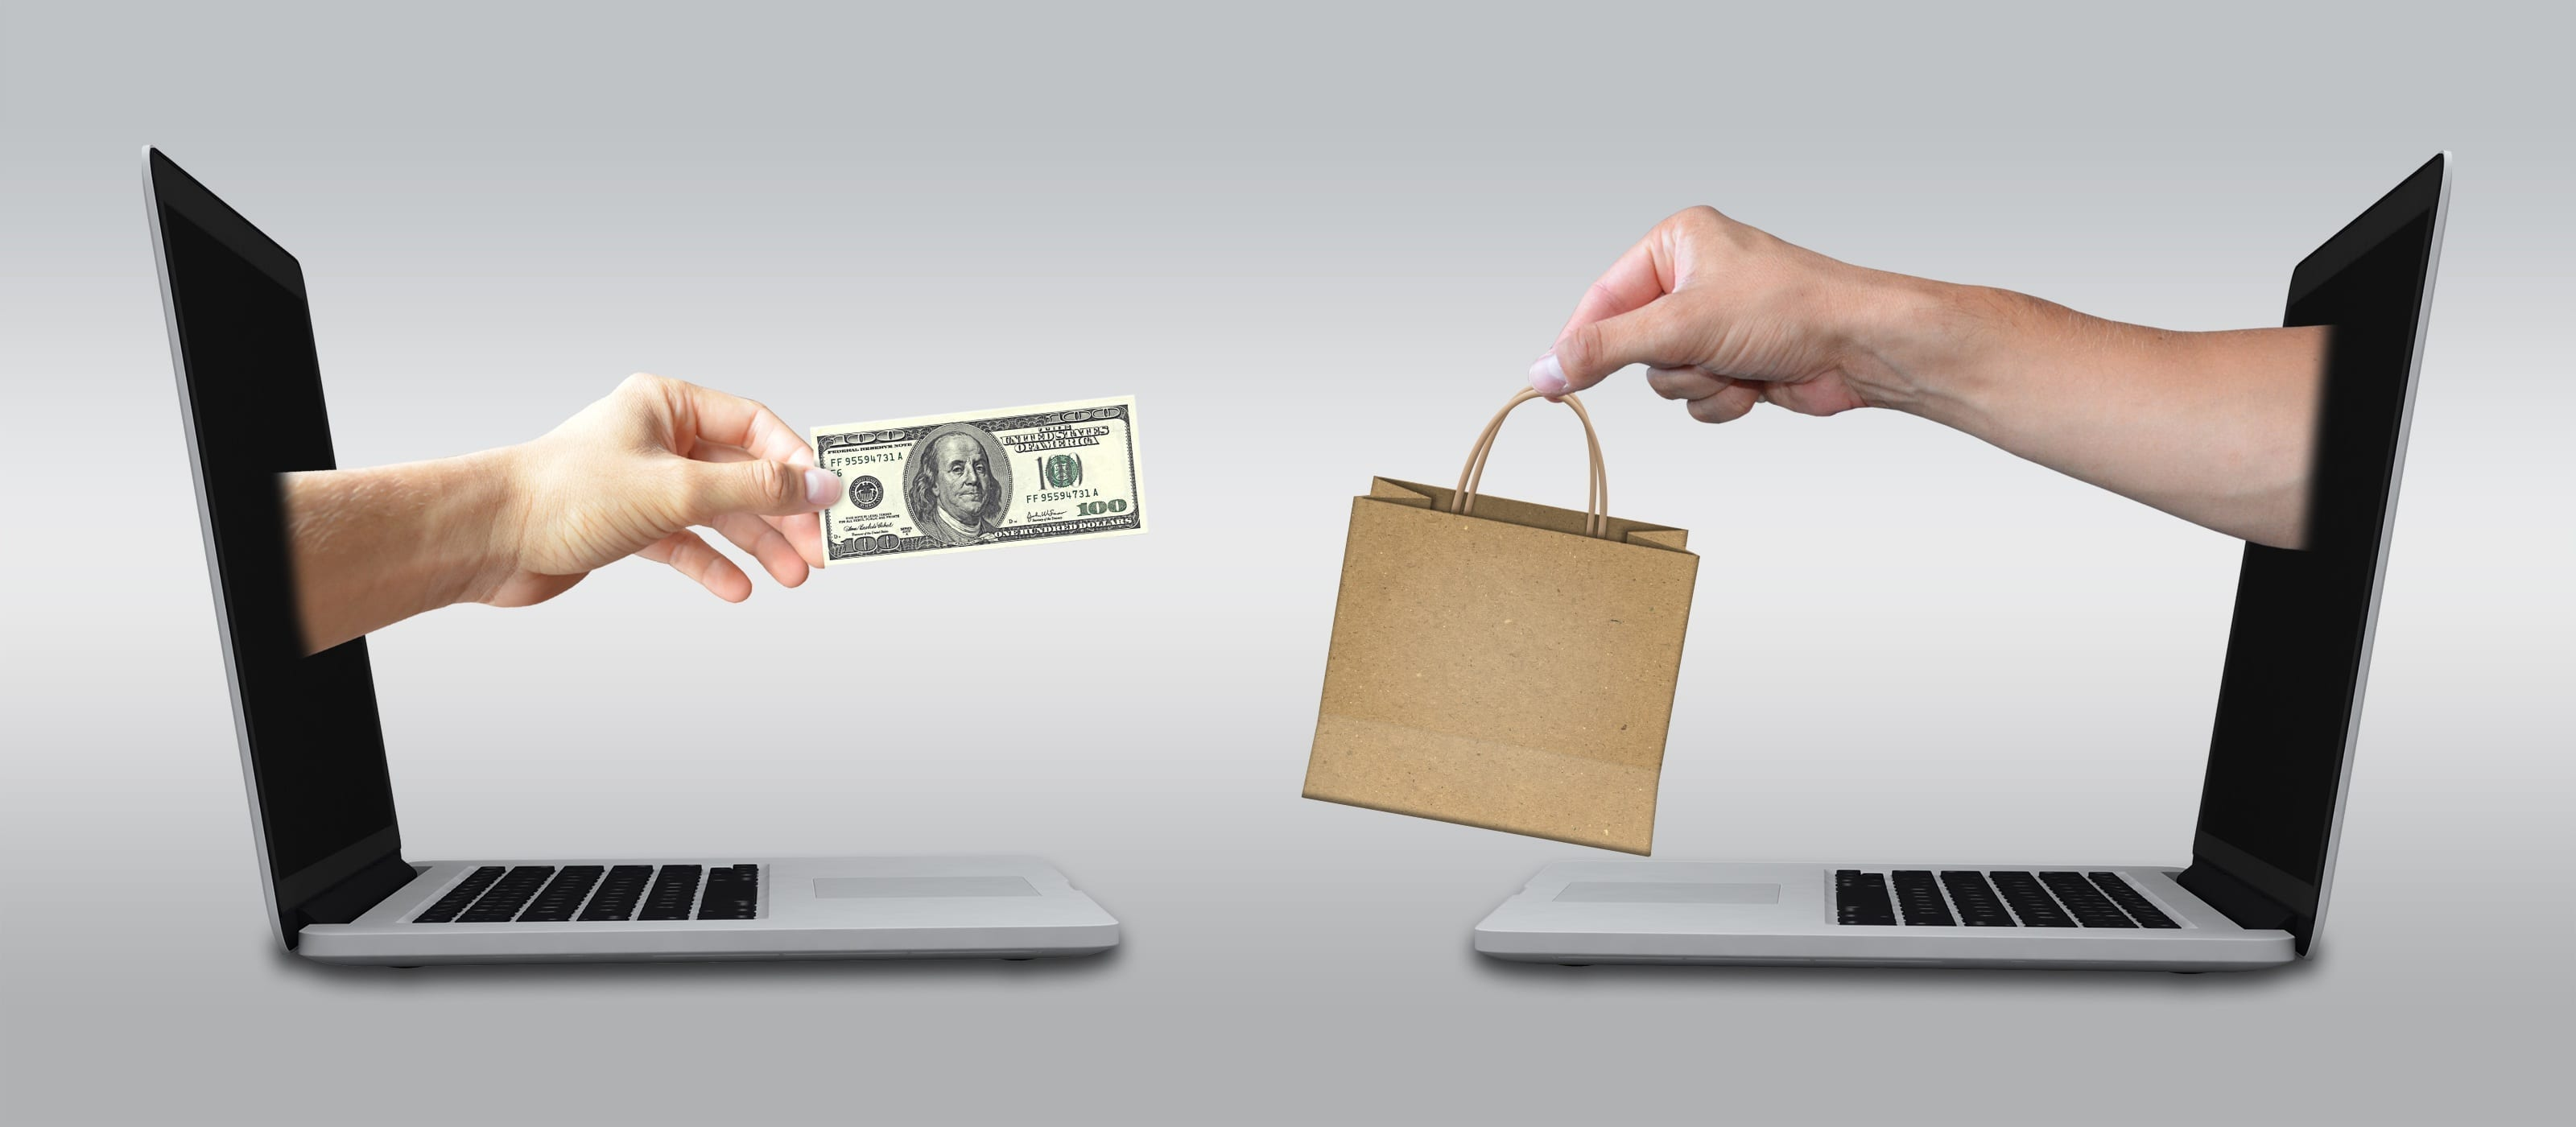 The Growth of E-Commerce Is Too Tempting To Miss